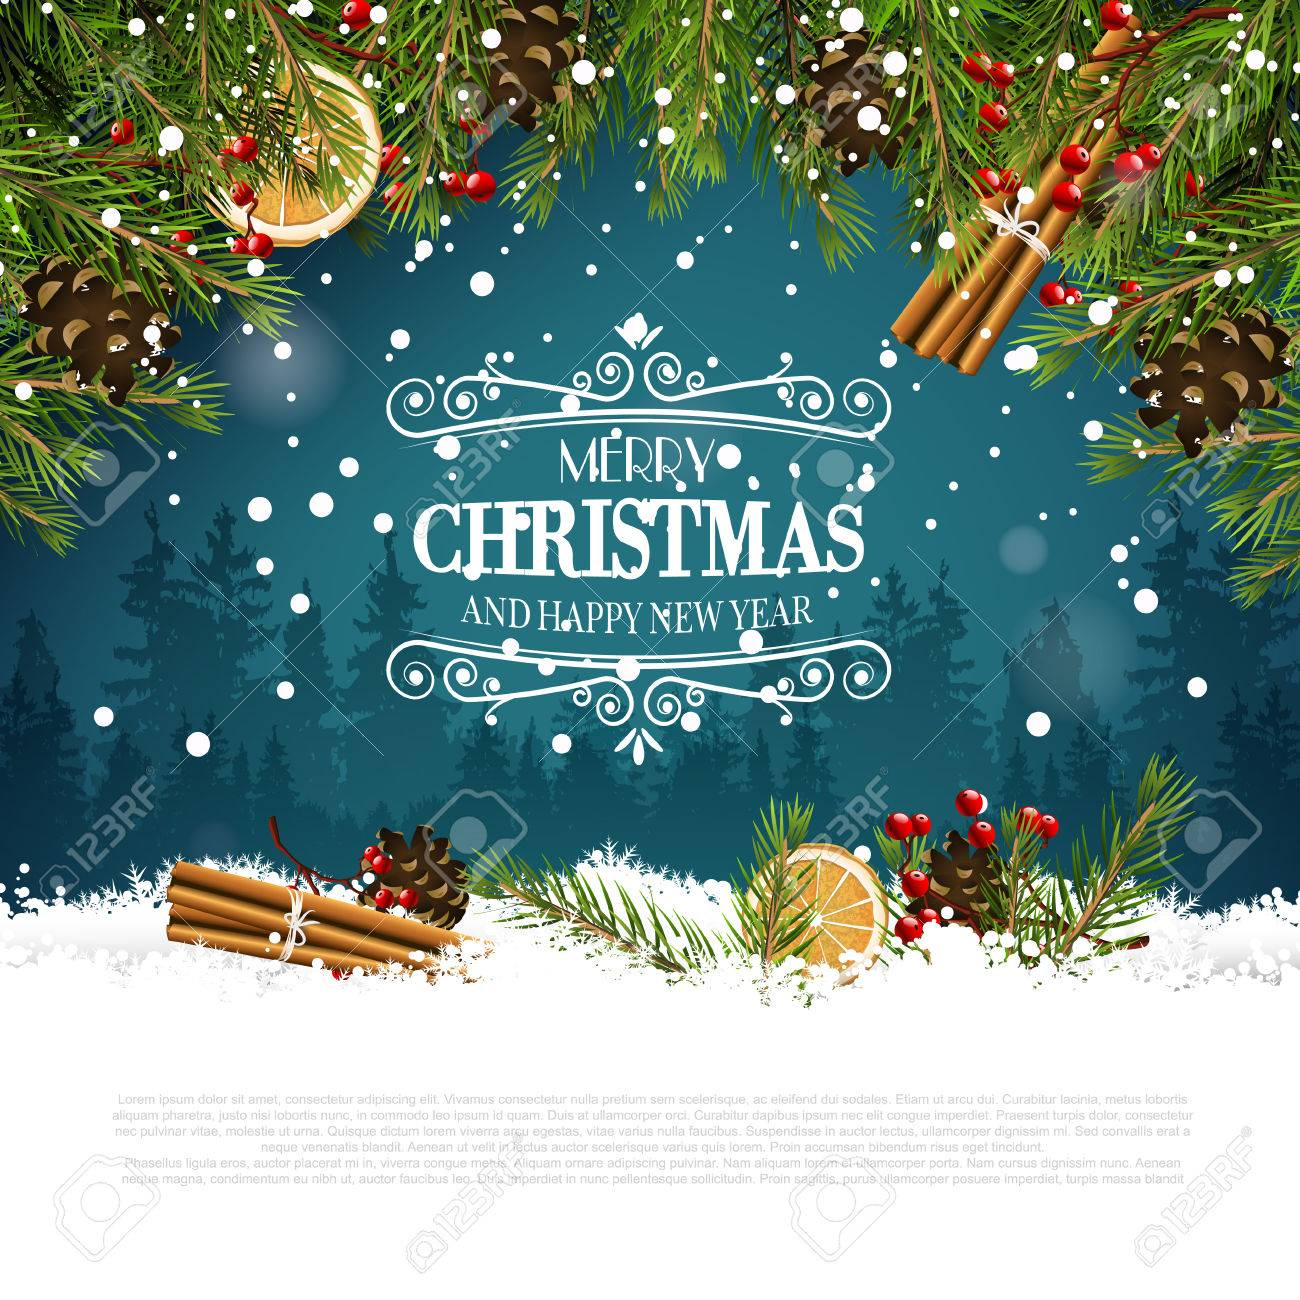 Christmas greeting card with traditional decorations and calligraphic lettering - 48786758